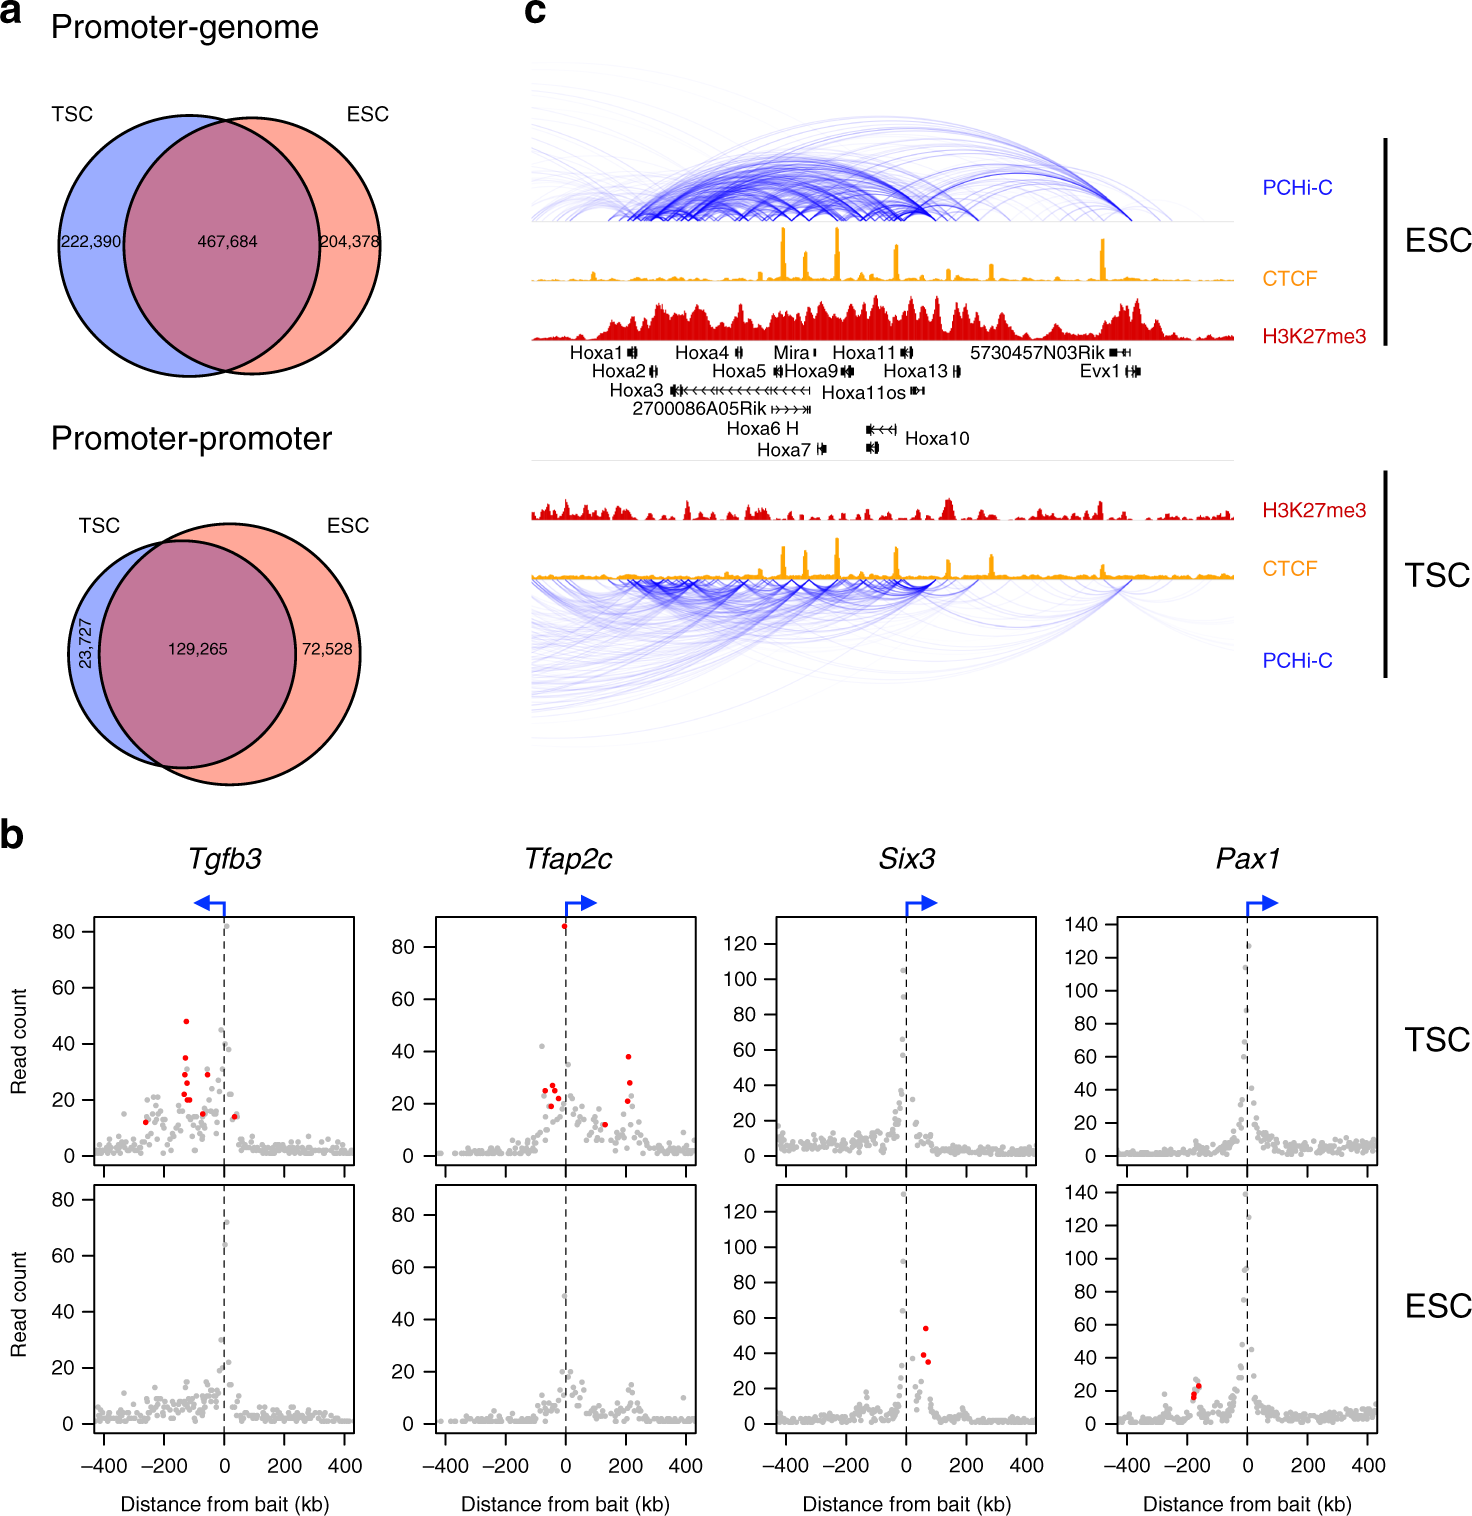 Divergent Wiring Of Repressive And Active Chromatin Interactions Goodall Diagrams Between Mouse Embryonic Trophoblast Lineages Nature Communications